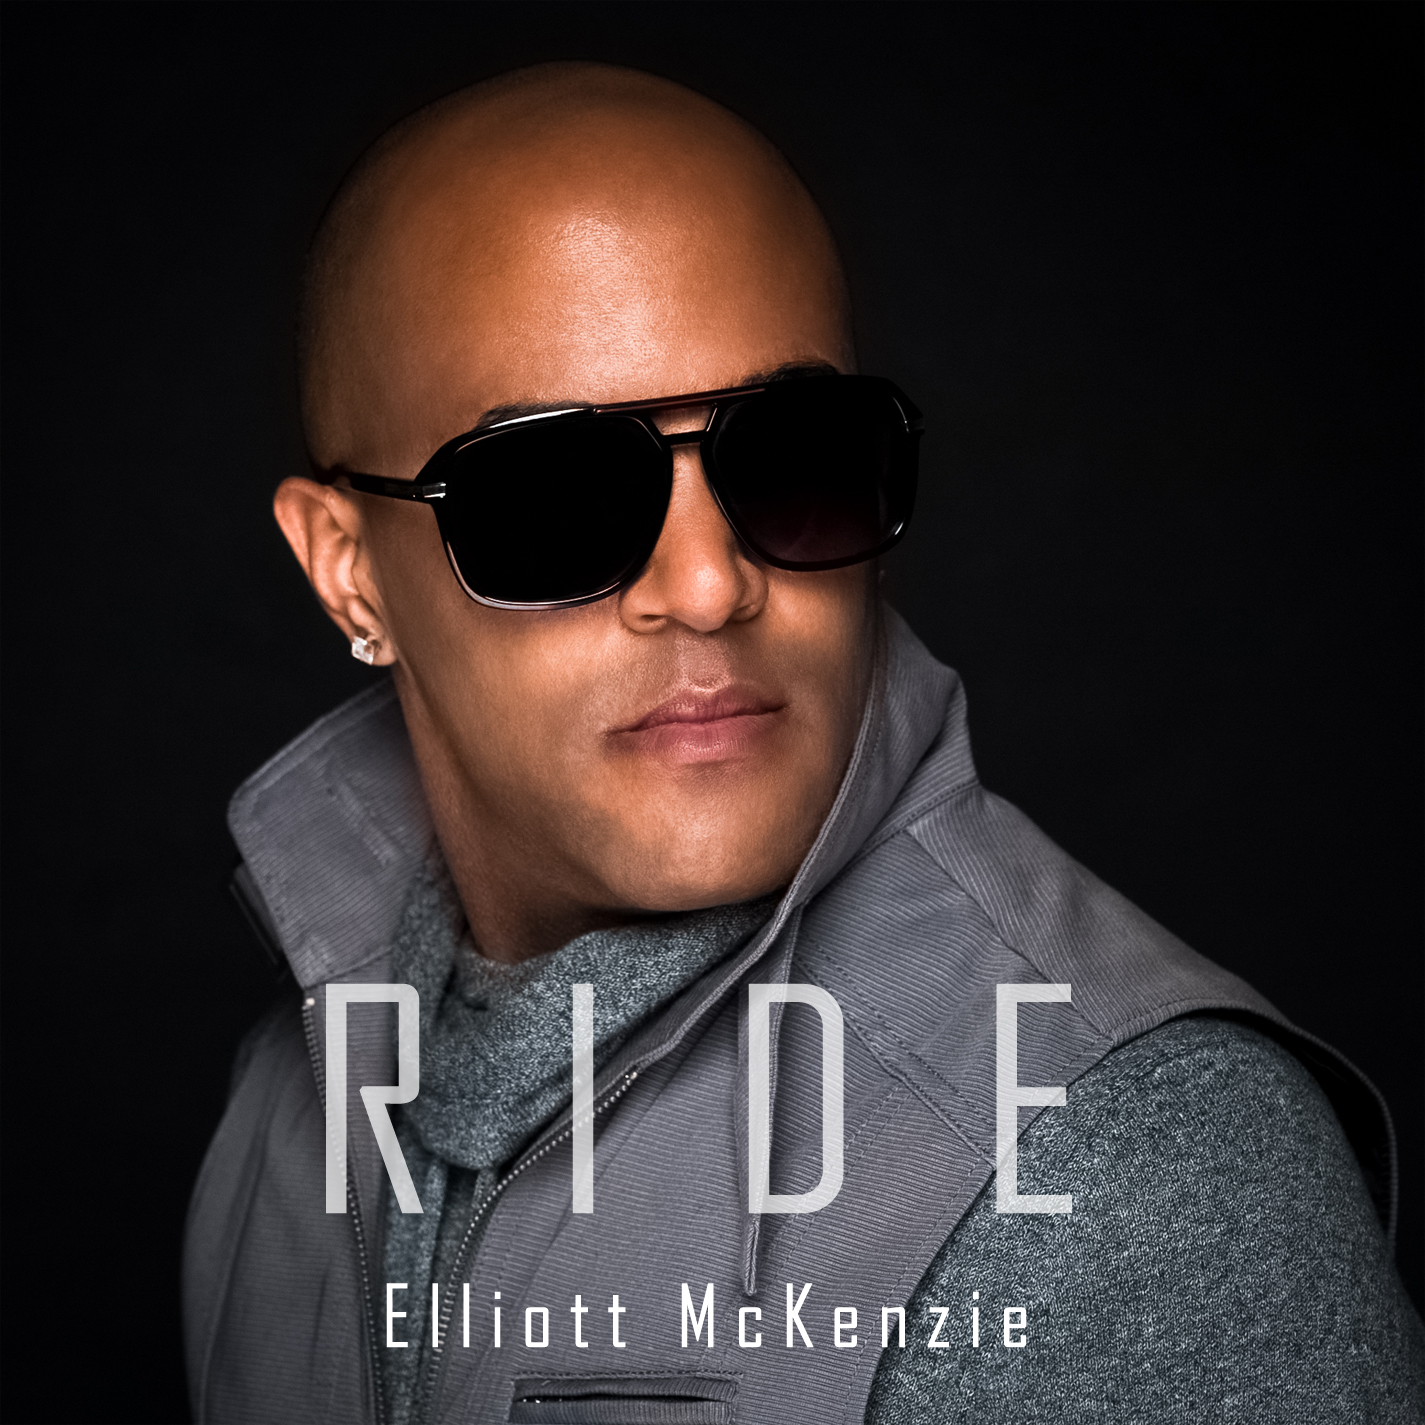 "RIDE - Click below to purchase Elliott's single ""Ride"" on itunes! It is also available in the Google Play Store, on Spotify, and everywhere digital music is sold!"